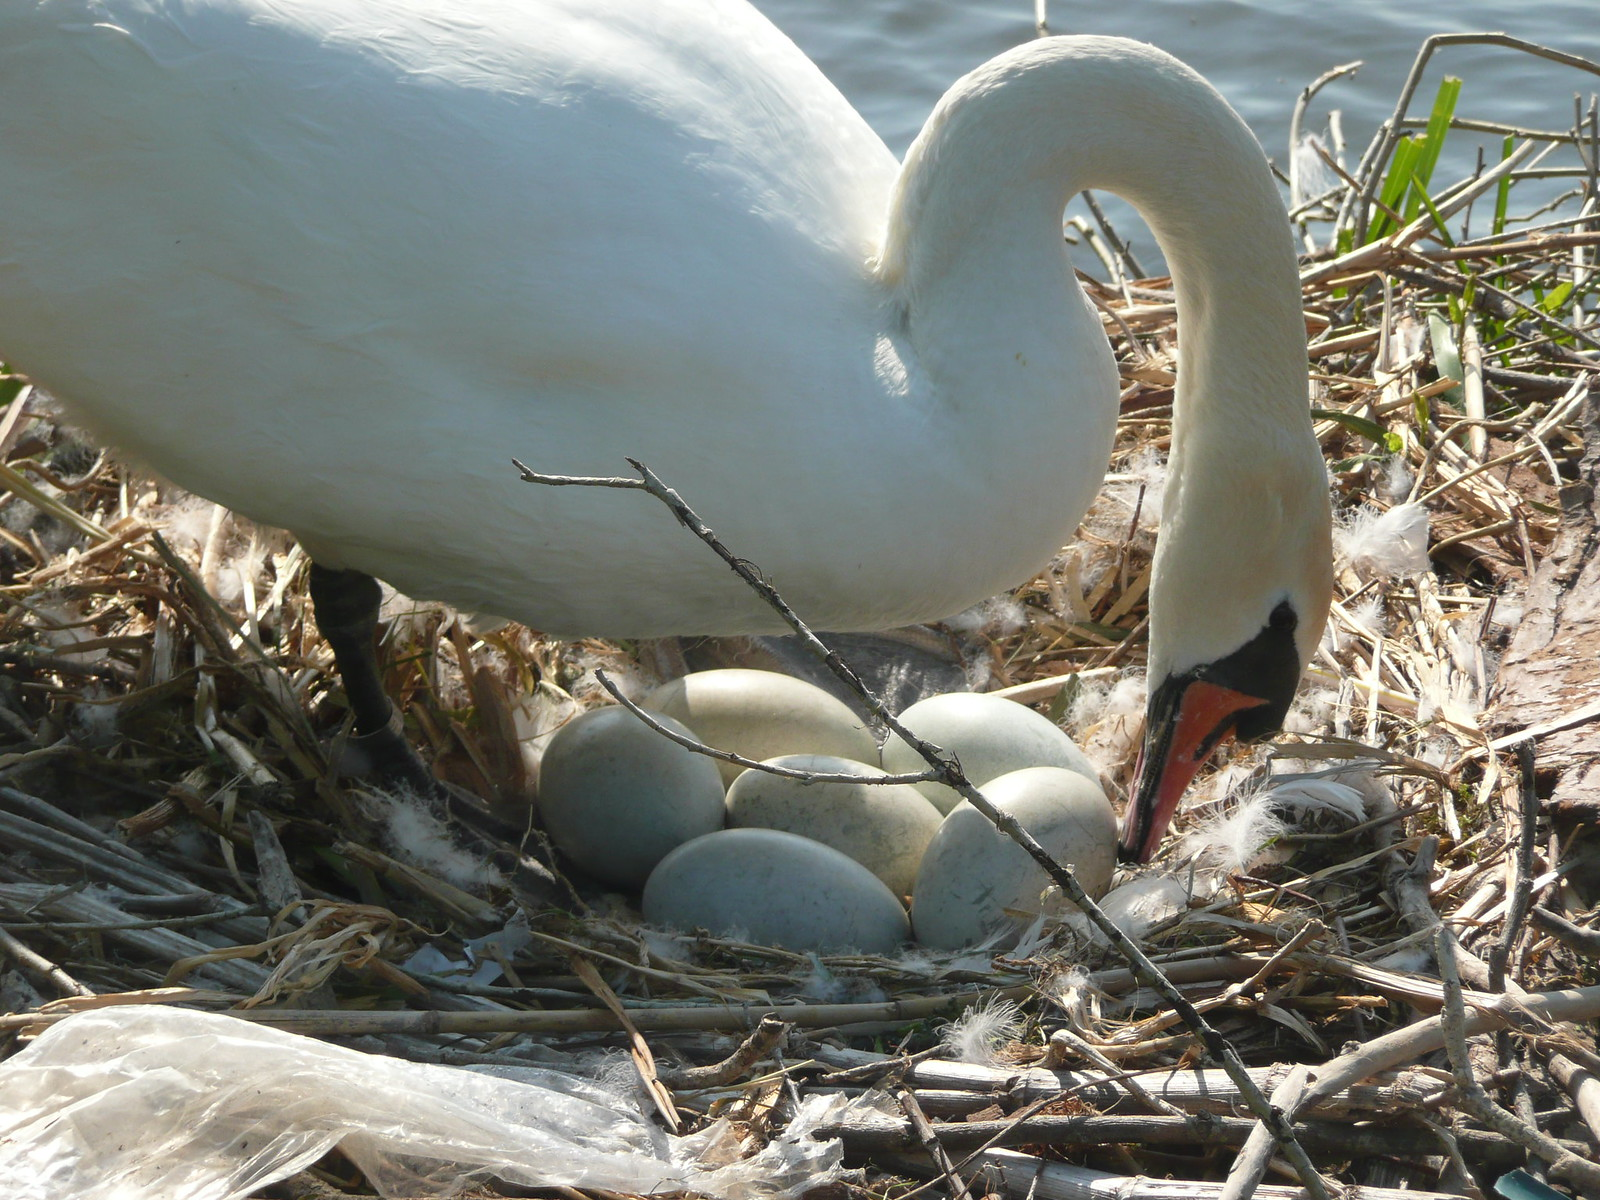 Swan turning her eggs Eggs over easy?